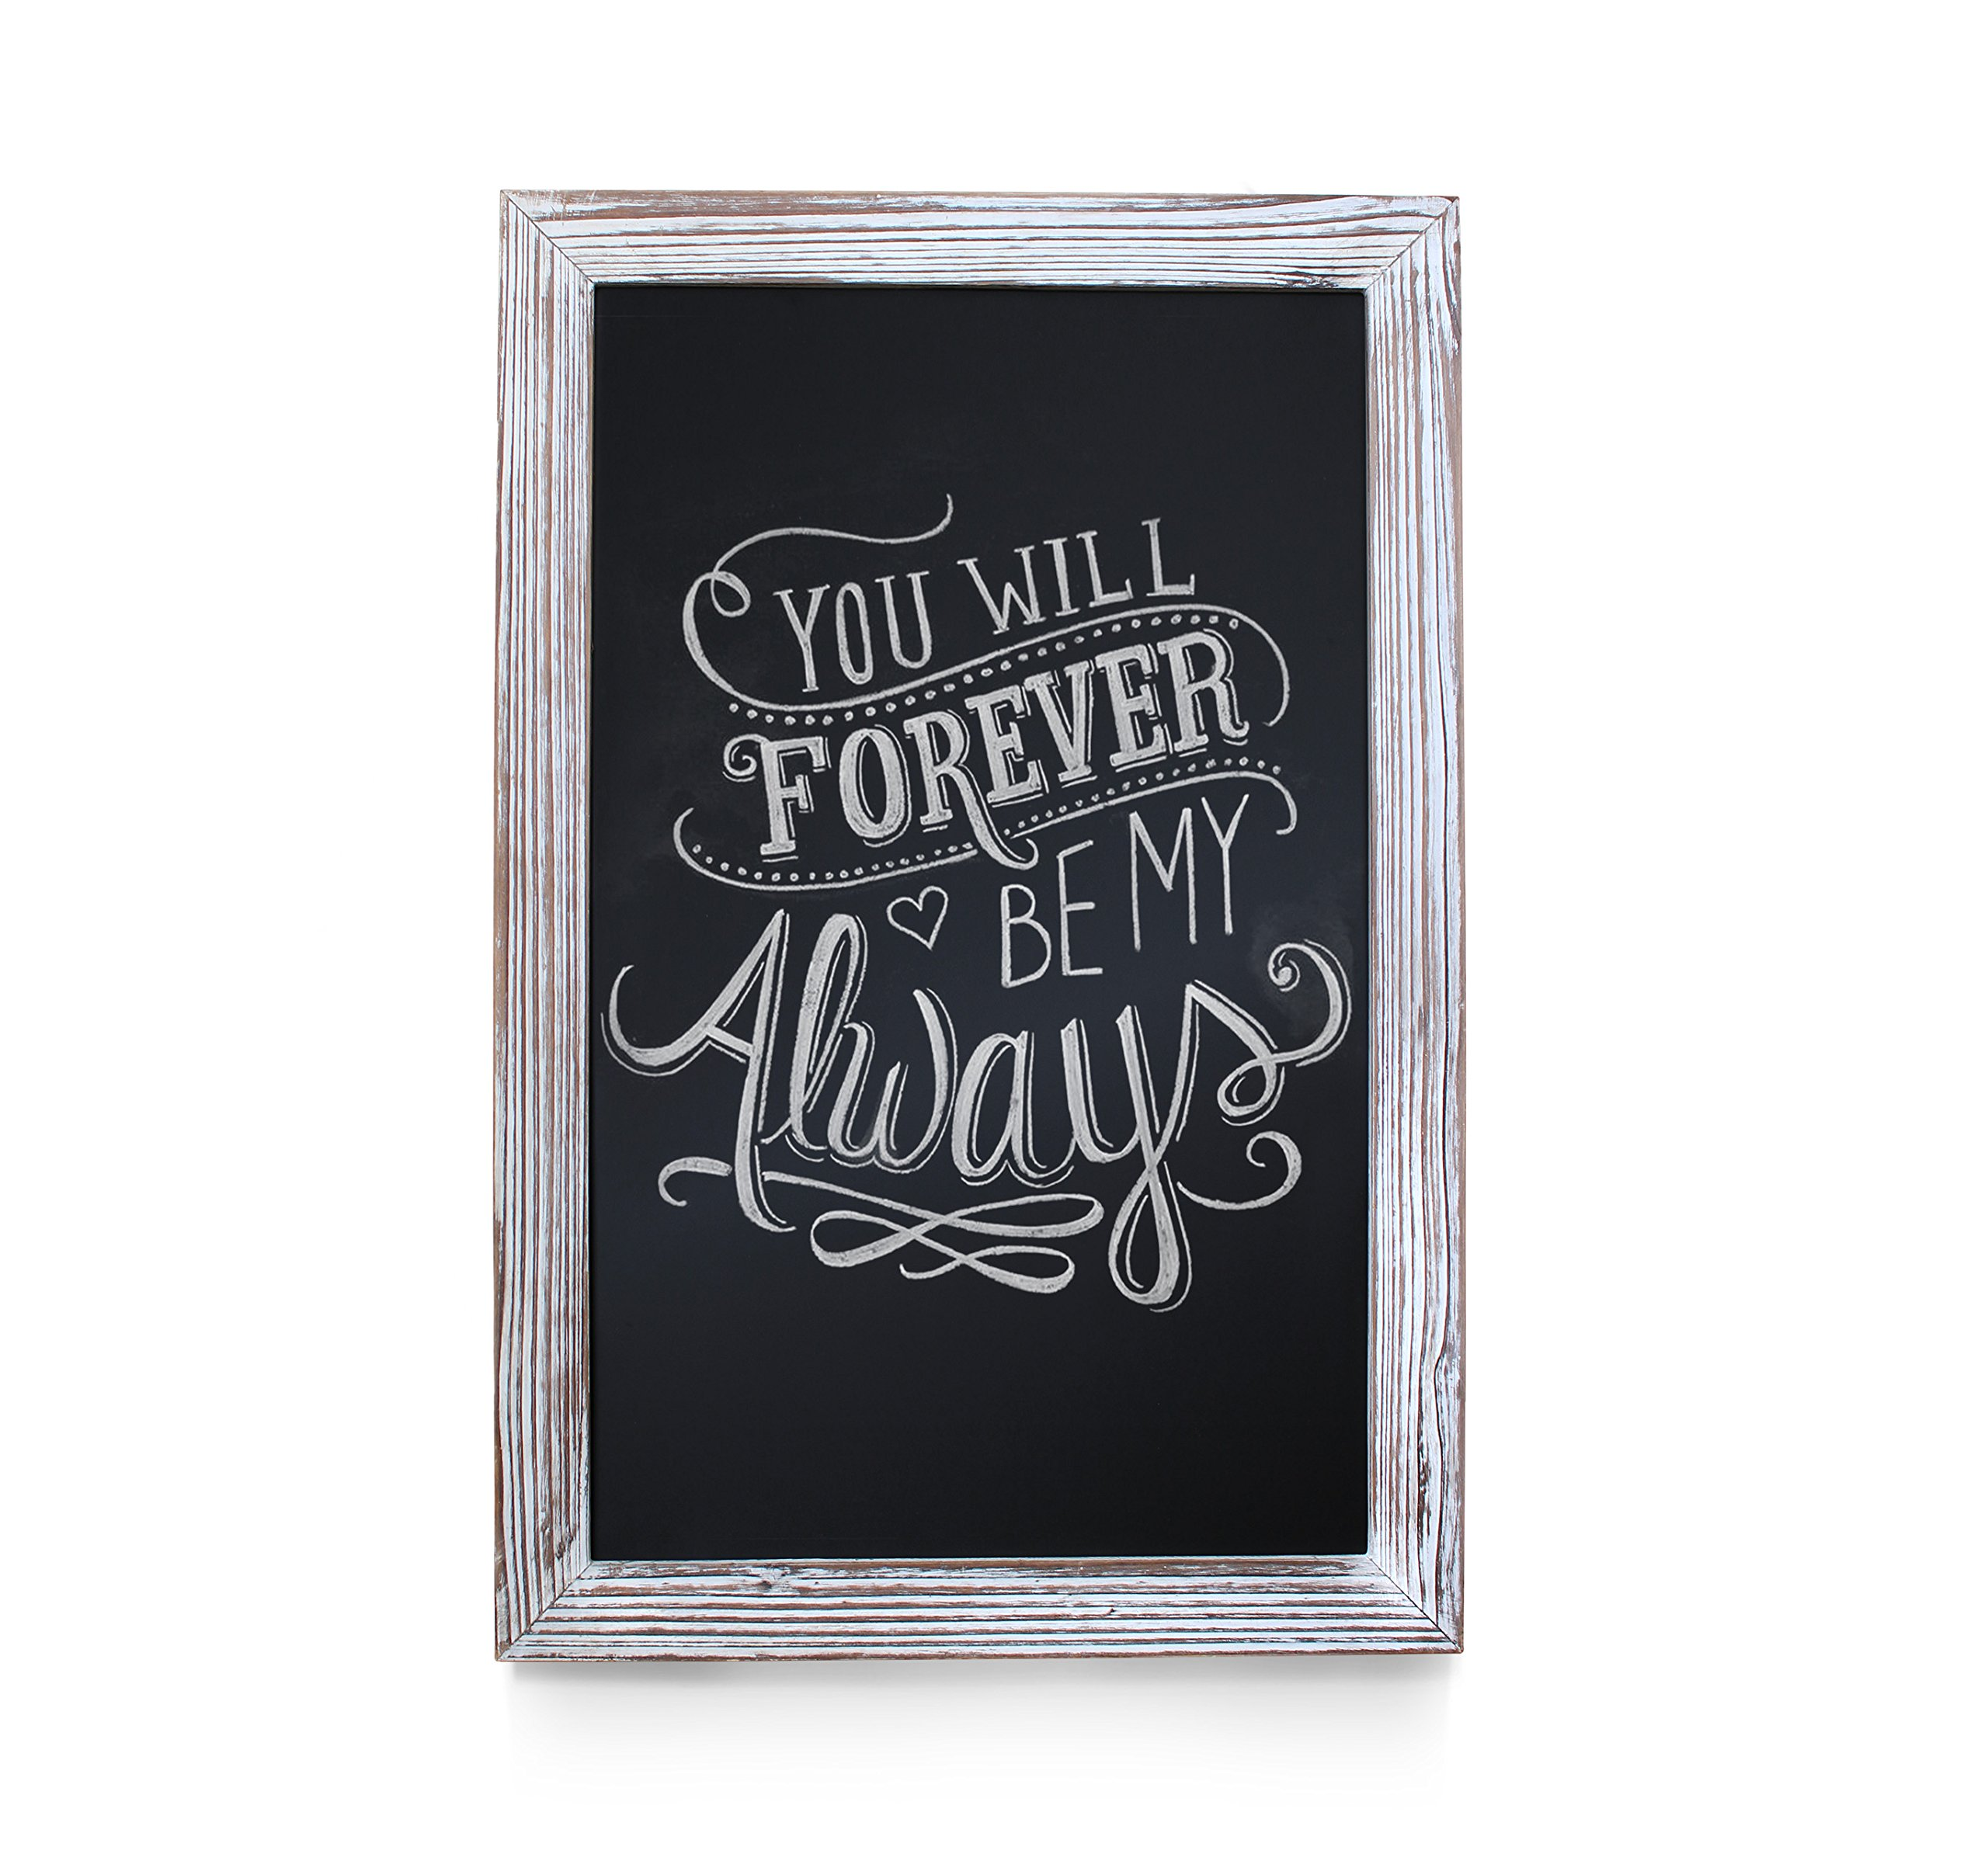 Rustic Whitewashed Magnetic Wall Chalkboard, Extra Large Size 20'' x 30'', Framed Decorative Chalkboard - Great for Kitchen Decor, Weddings, Restaurant Menus and More! … (20'' x 30'')